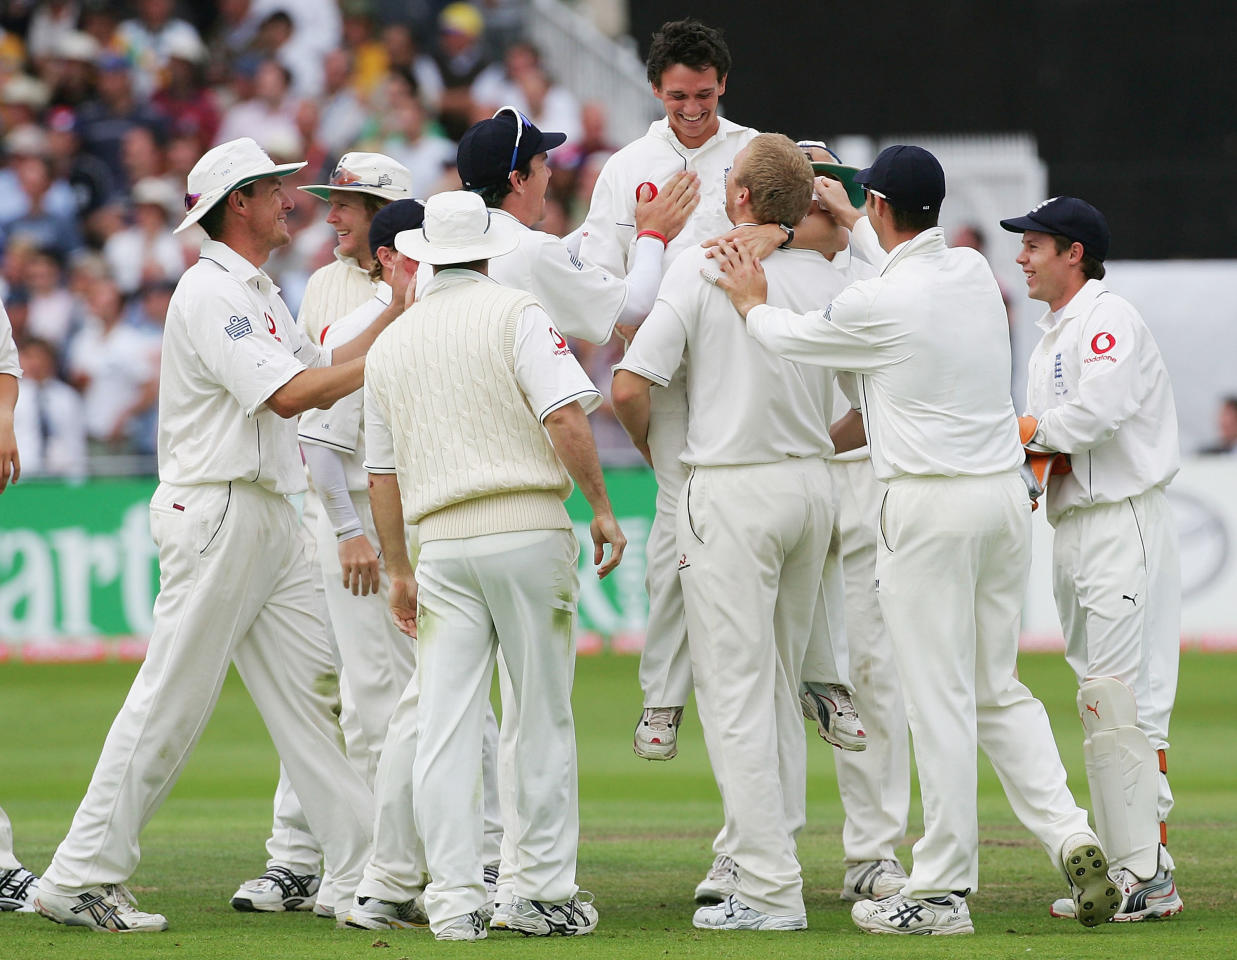 NOTTINGHAM, UNITED KINGDOM - AUGUST 27:  Gary Pratt substitute fielder (C) for England is congratulated by team mates after running out Ricky Ponting of Australia during day three of the Fourth npower Ashes Test between England and Australia played at Trent Bridge on August 27, 2005 in Nottingham, United Kingdom  (Photo by Hamish Blair/Getty Images)